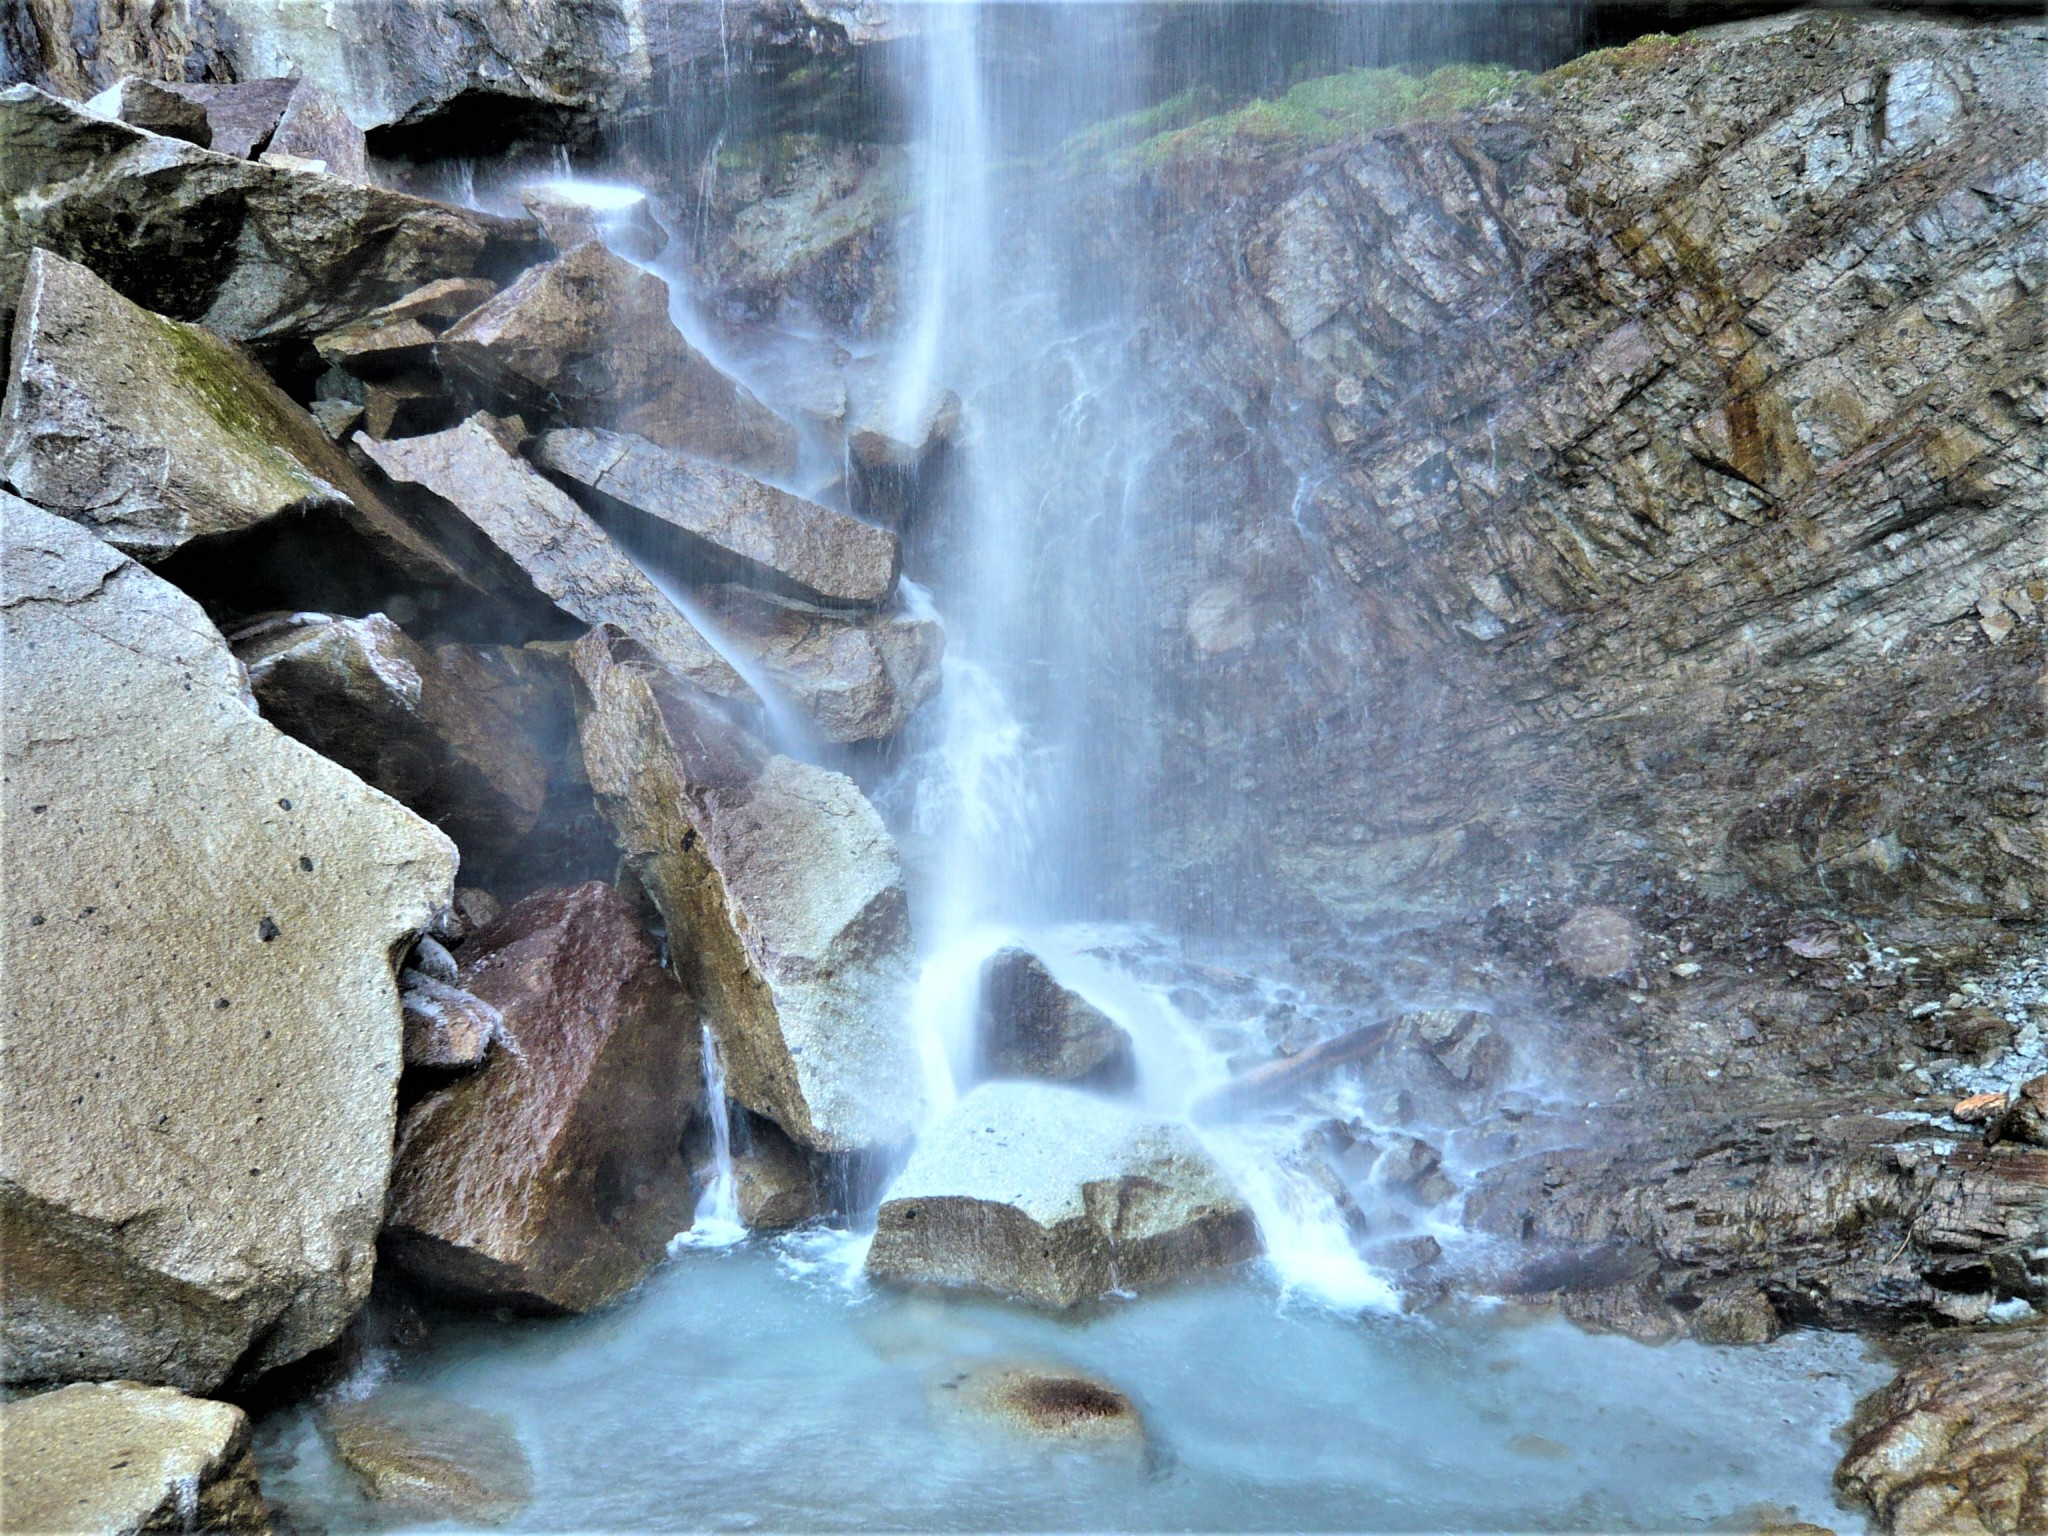 A turbulent waterfall cascading over large rocks and boulders into a clear pool of water at Mount Houou in Japan.